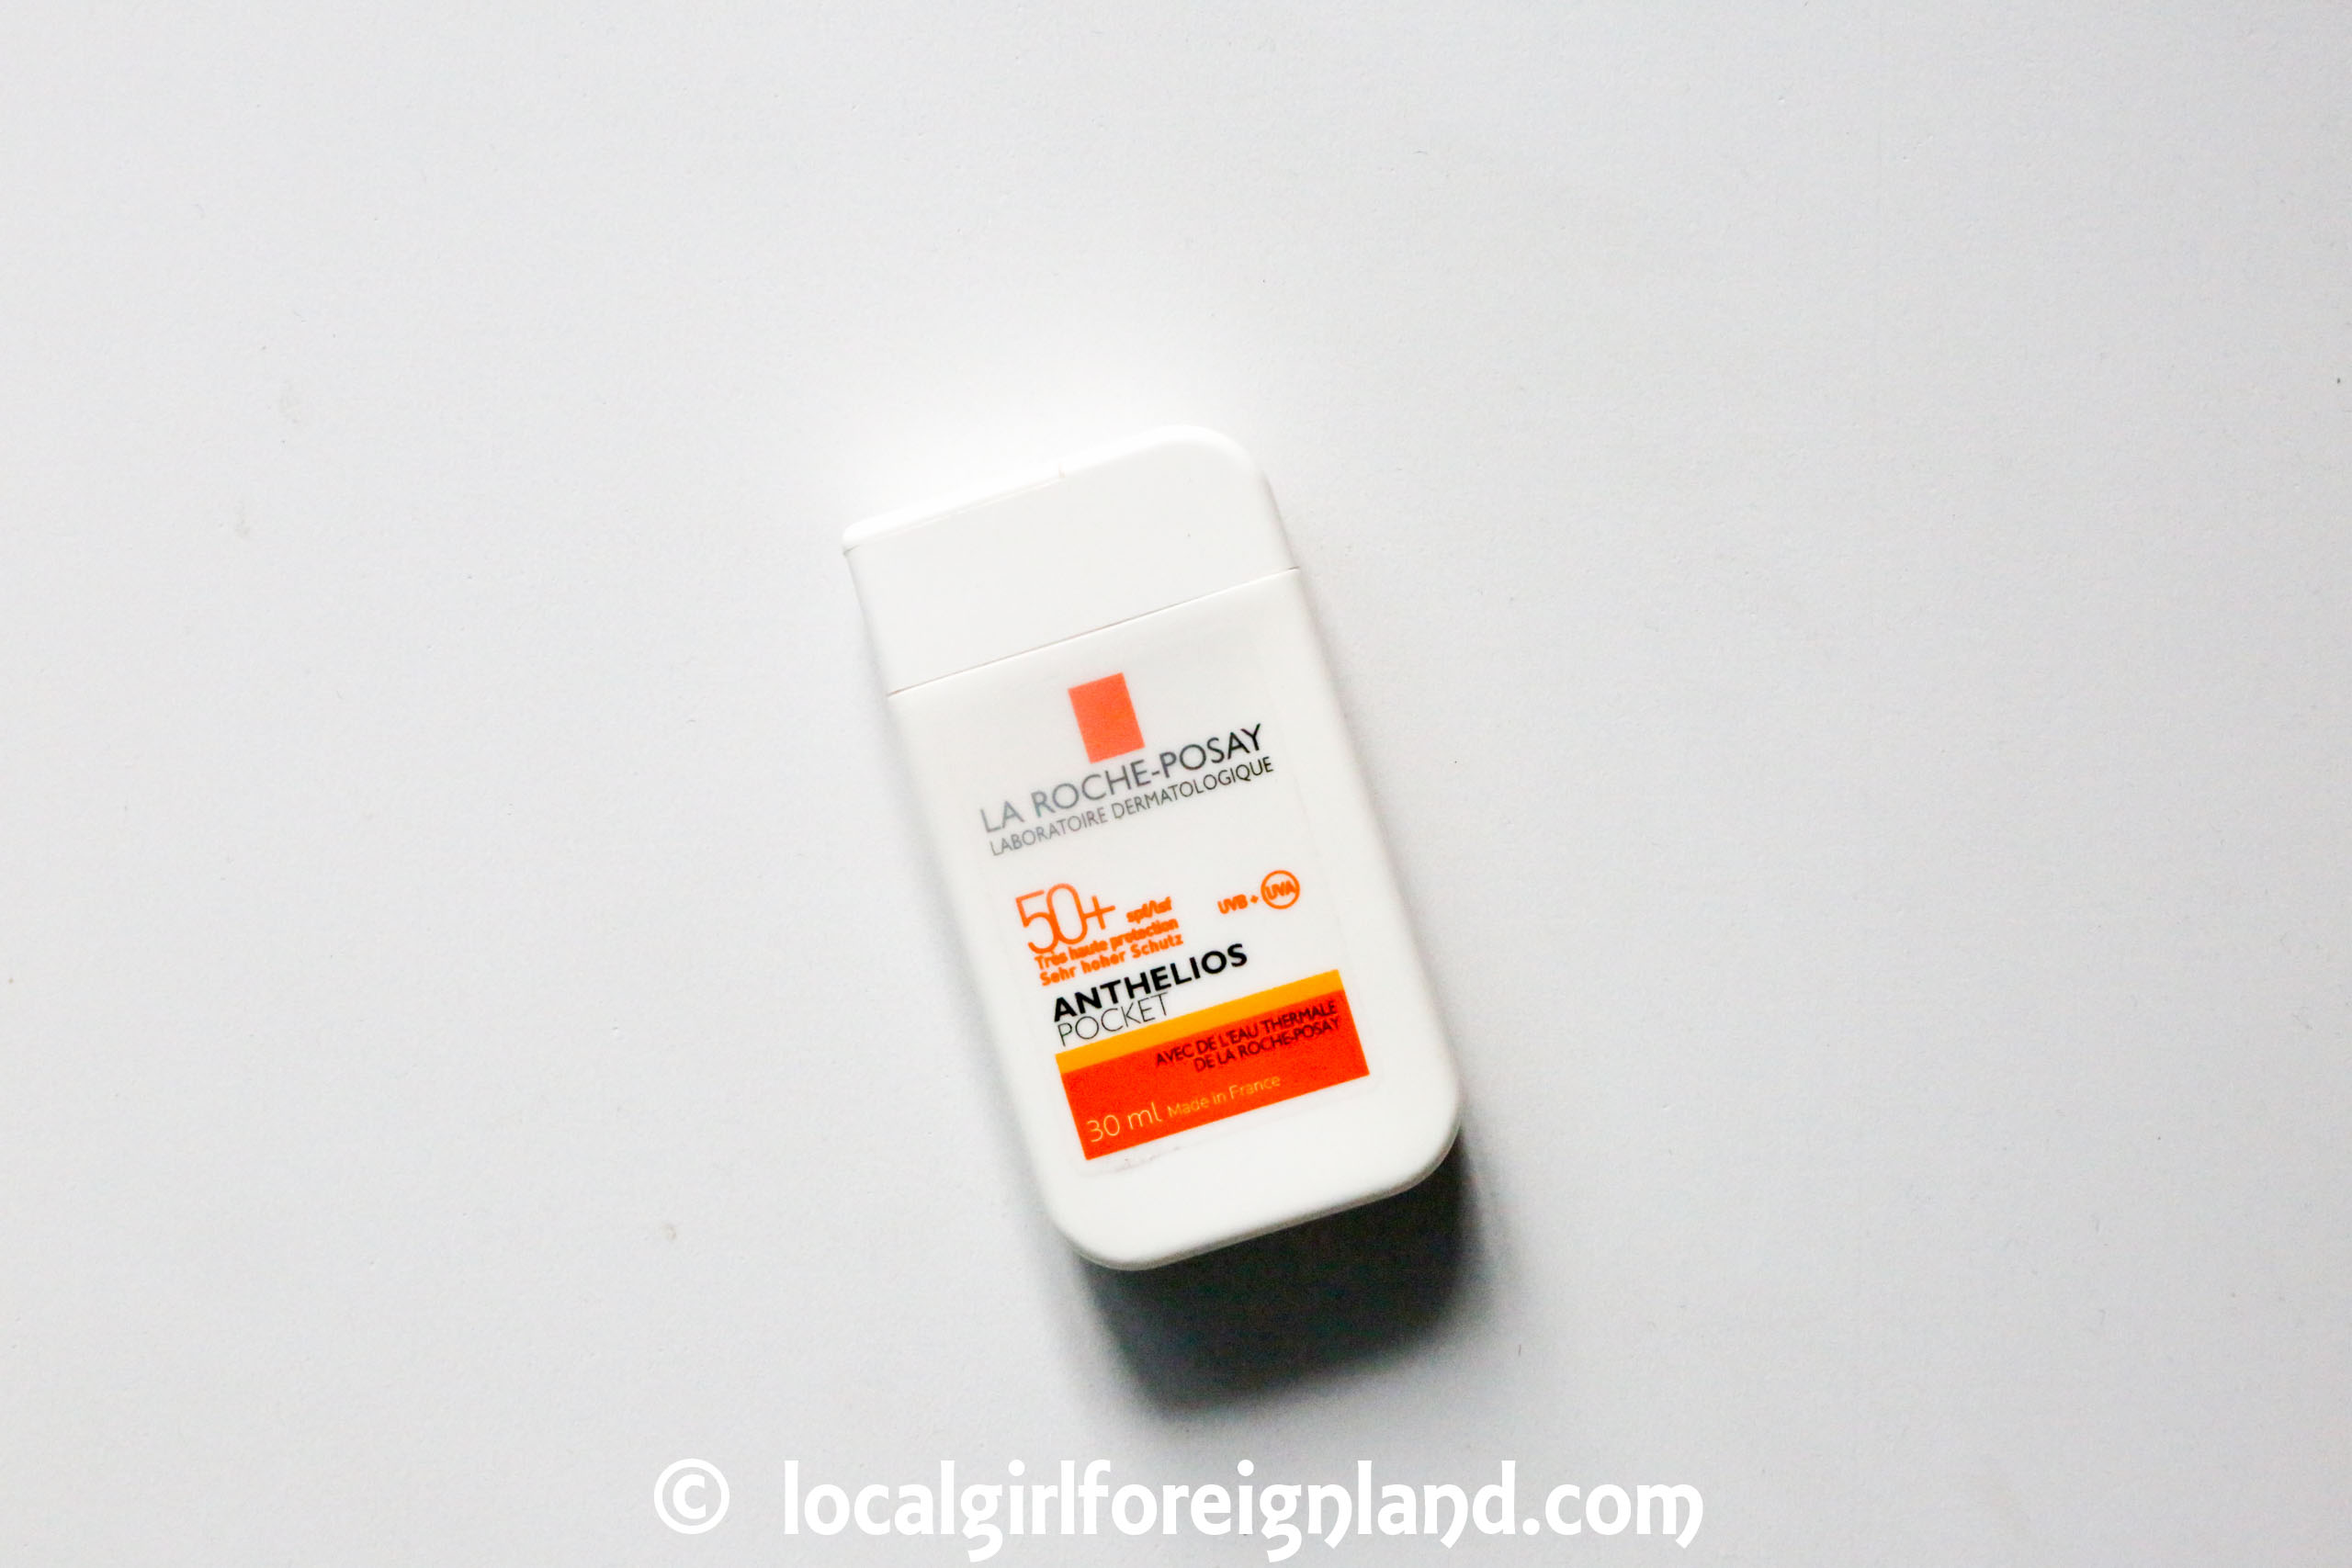 La Roche-Posay Anthelios pocket size